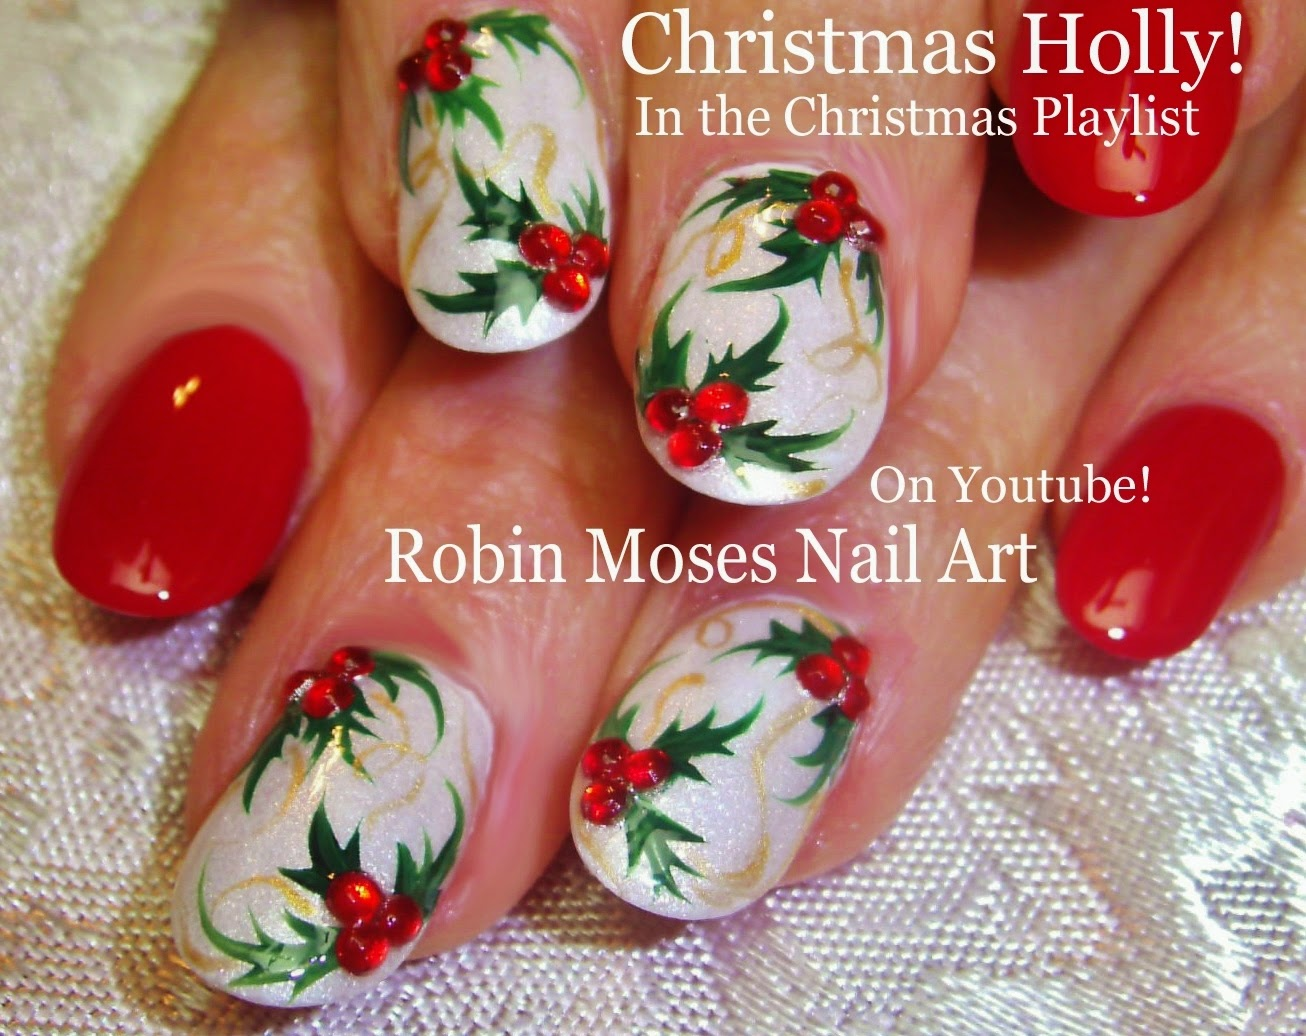 Robin moses nail art christmas nails xmas nails xmas nail christmas nails xmas nails xmas nail art holly nails holly design cute holly christmas nail art design tutorial diy prinsesfo Images